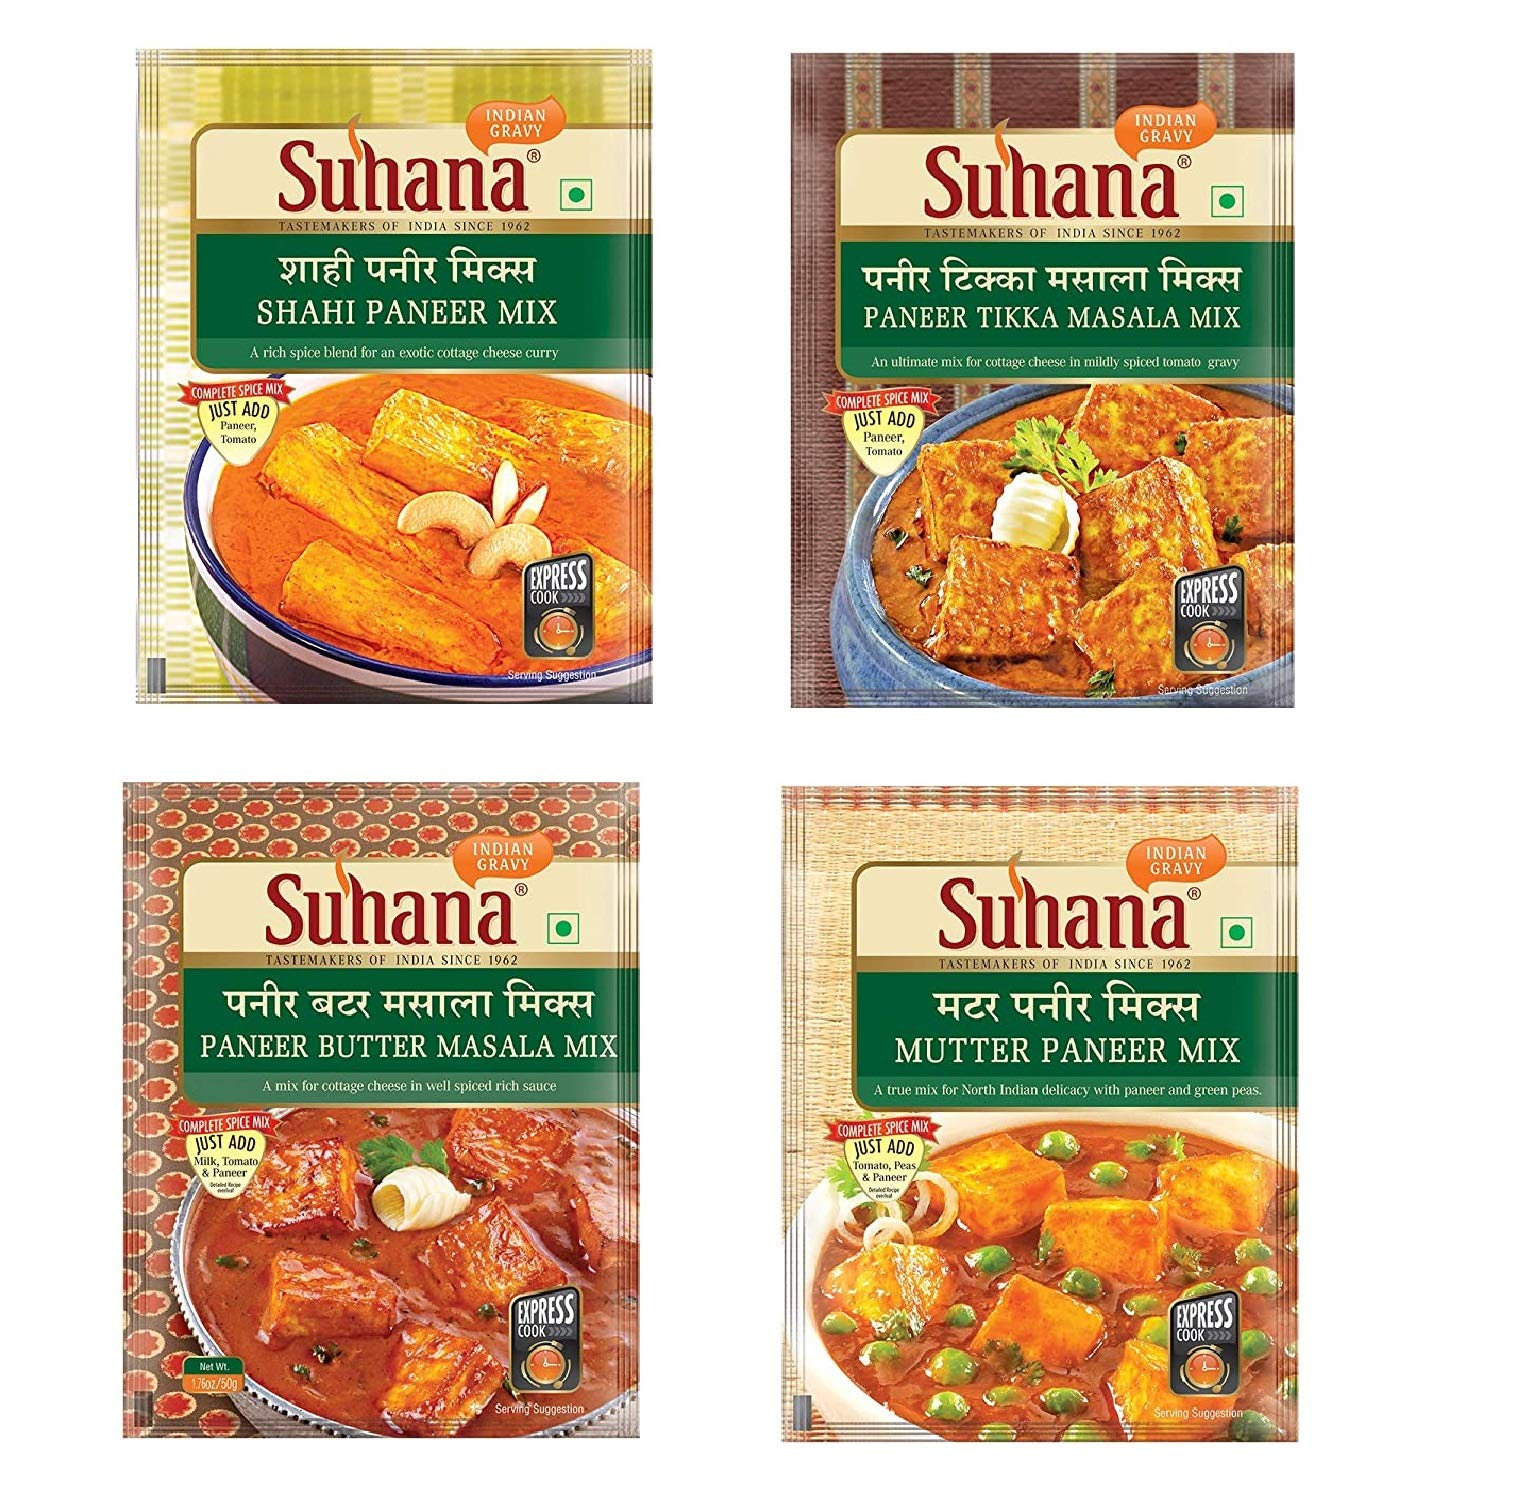 Suhana Paneer Combo of 8 (Shahi Paneer 2 - Paneer Butter 2 -Paneer Tikka 2 -Mutter Paneer 2) Easy to Cook